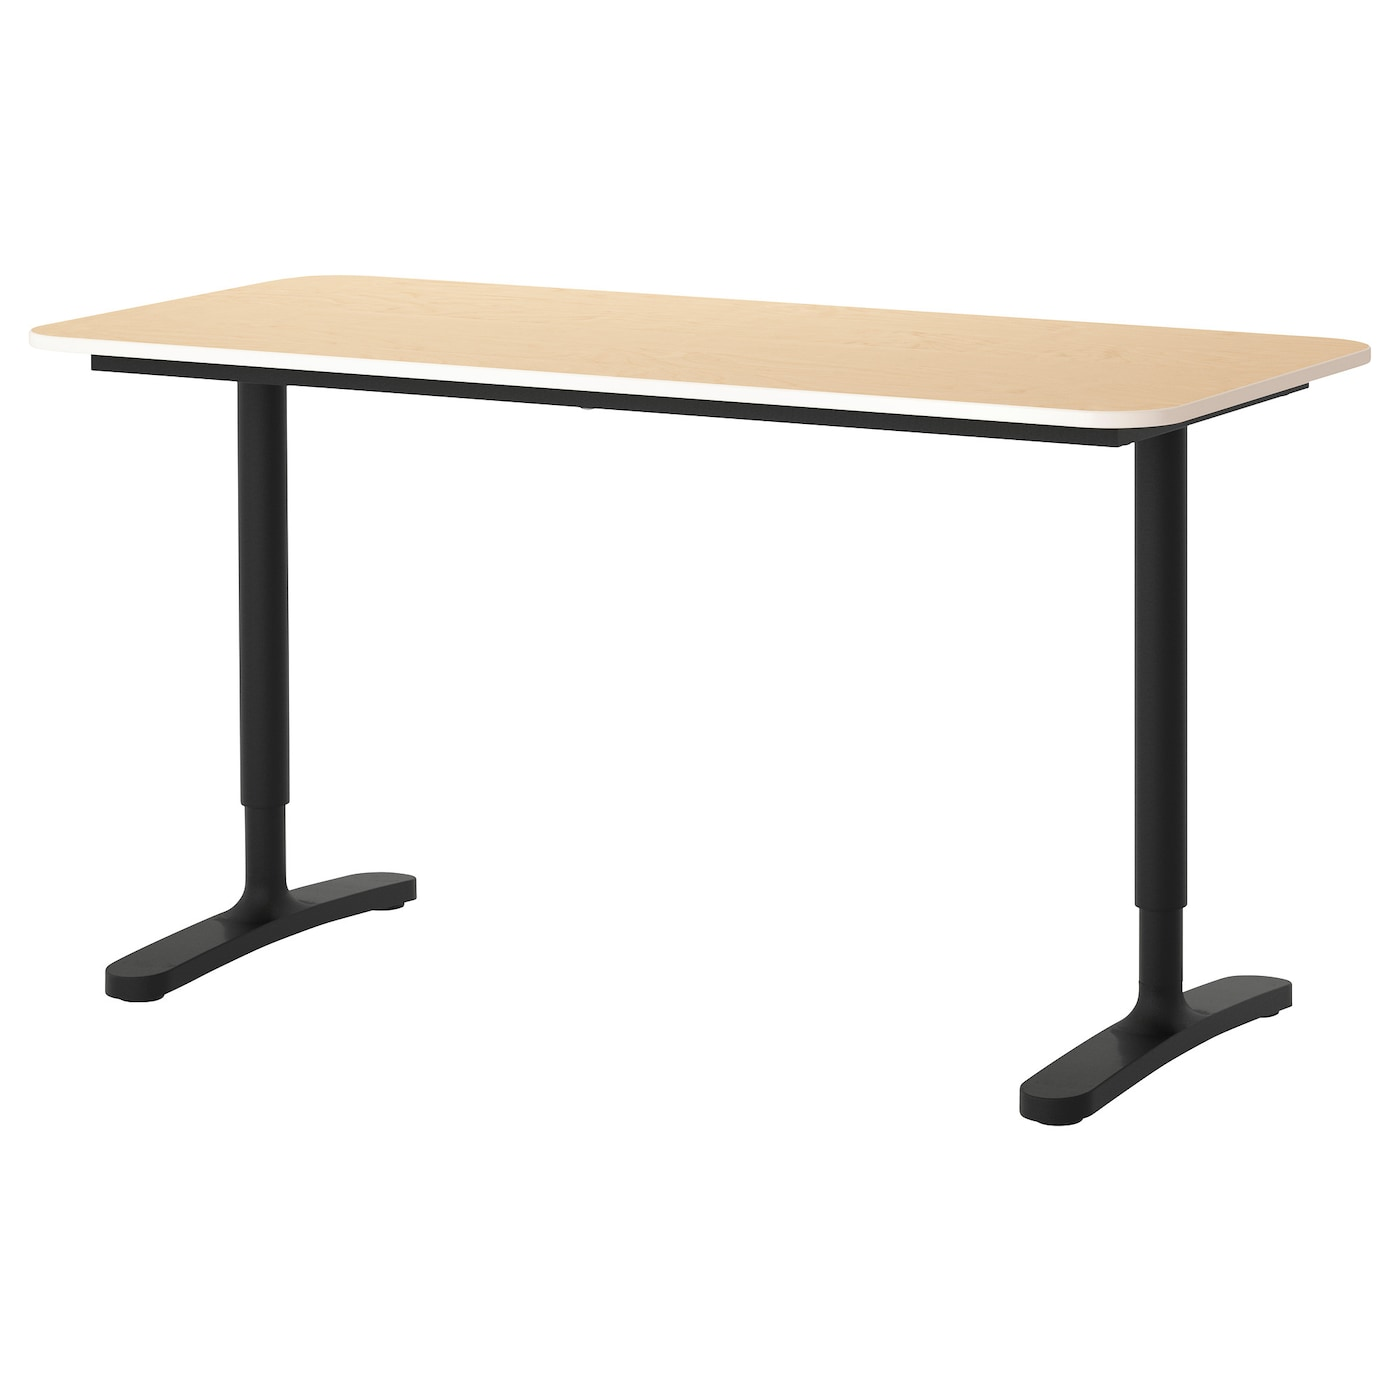 IKEA BEKANT desk 10 year guarantee. Read about the terms in the guarantee brochure.